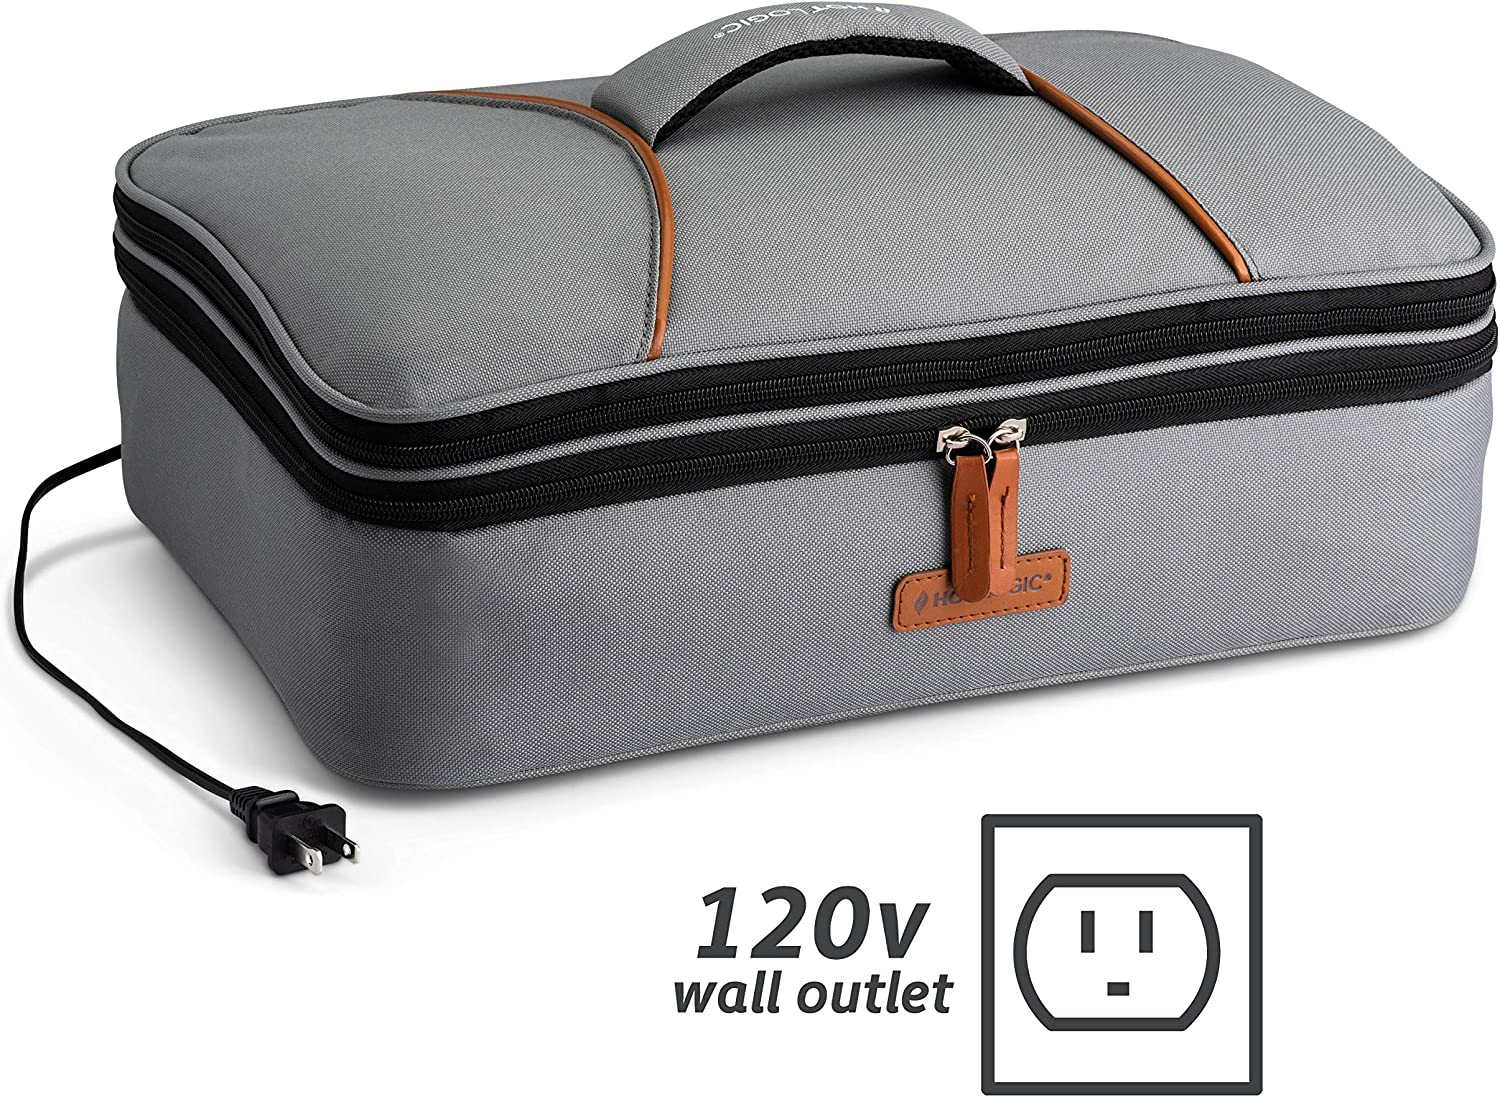 HotLogic 16801170-GY Food Warming Tote Casserole Carrier Plus 120V, Gray